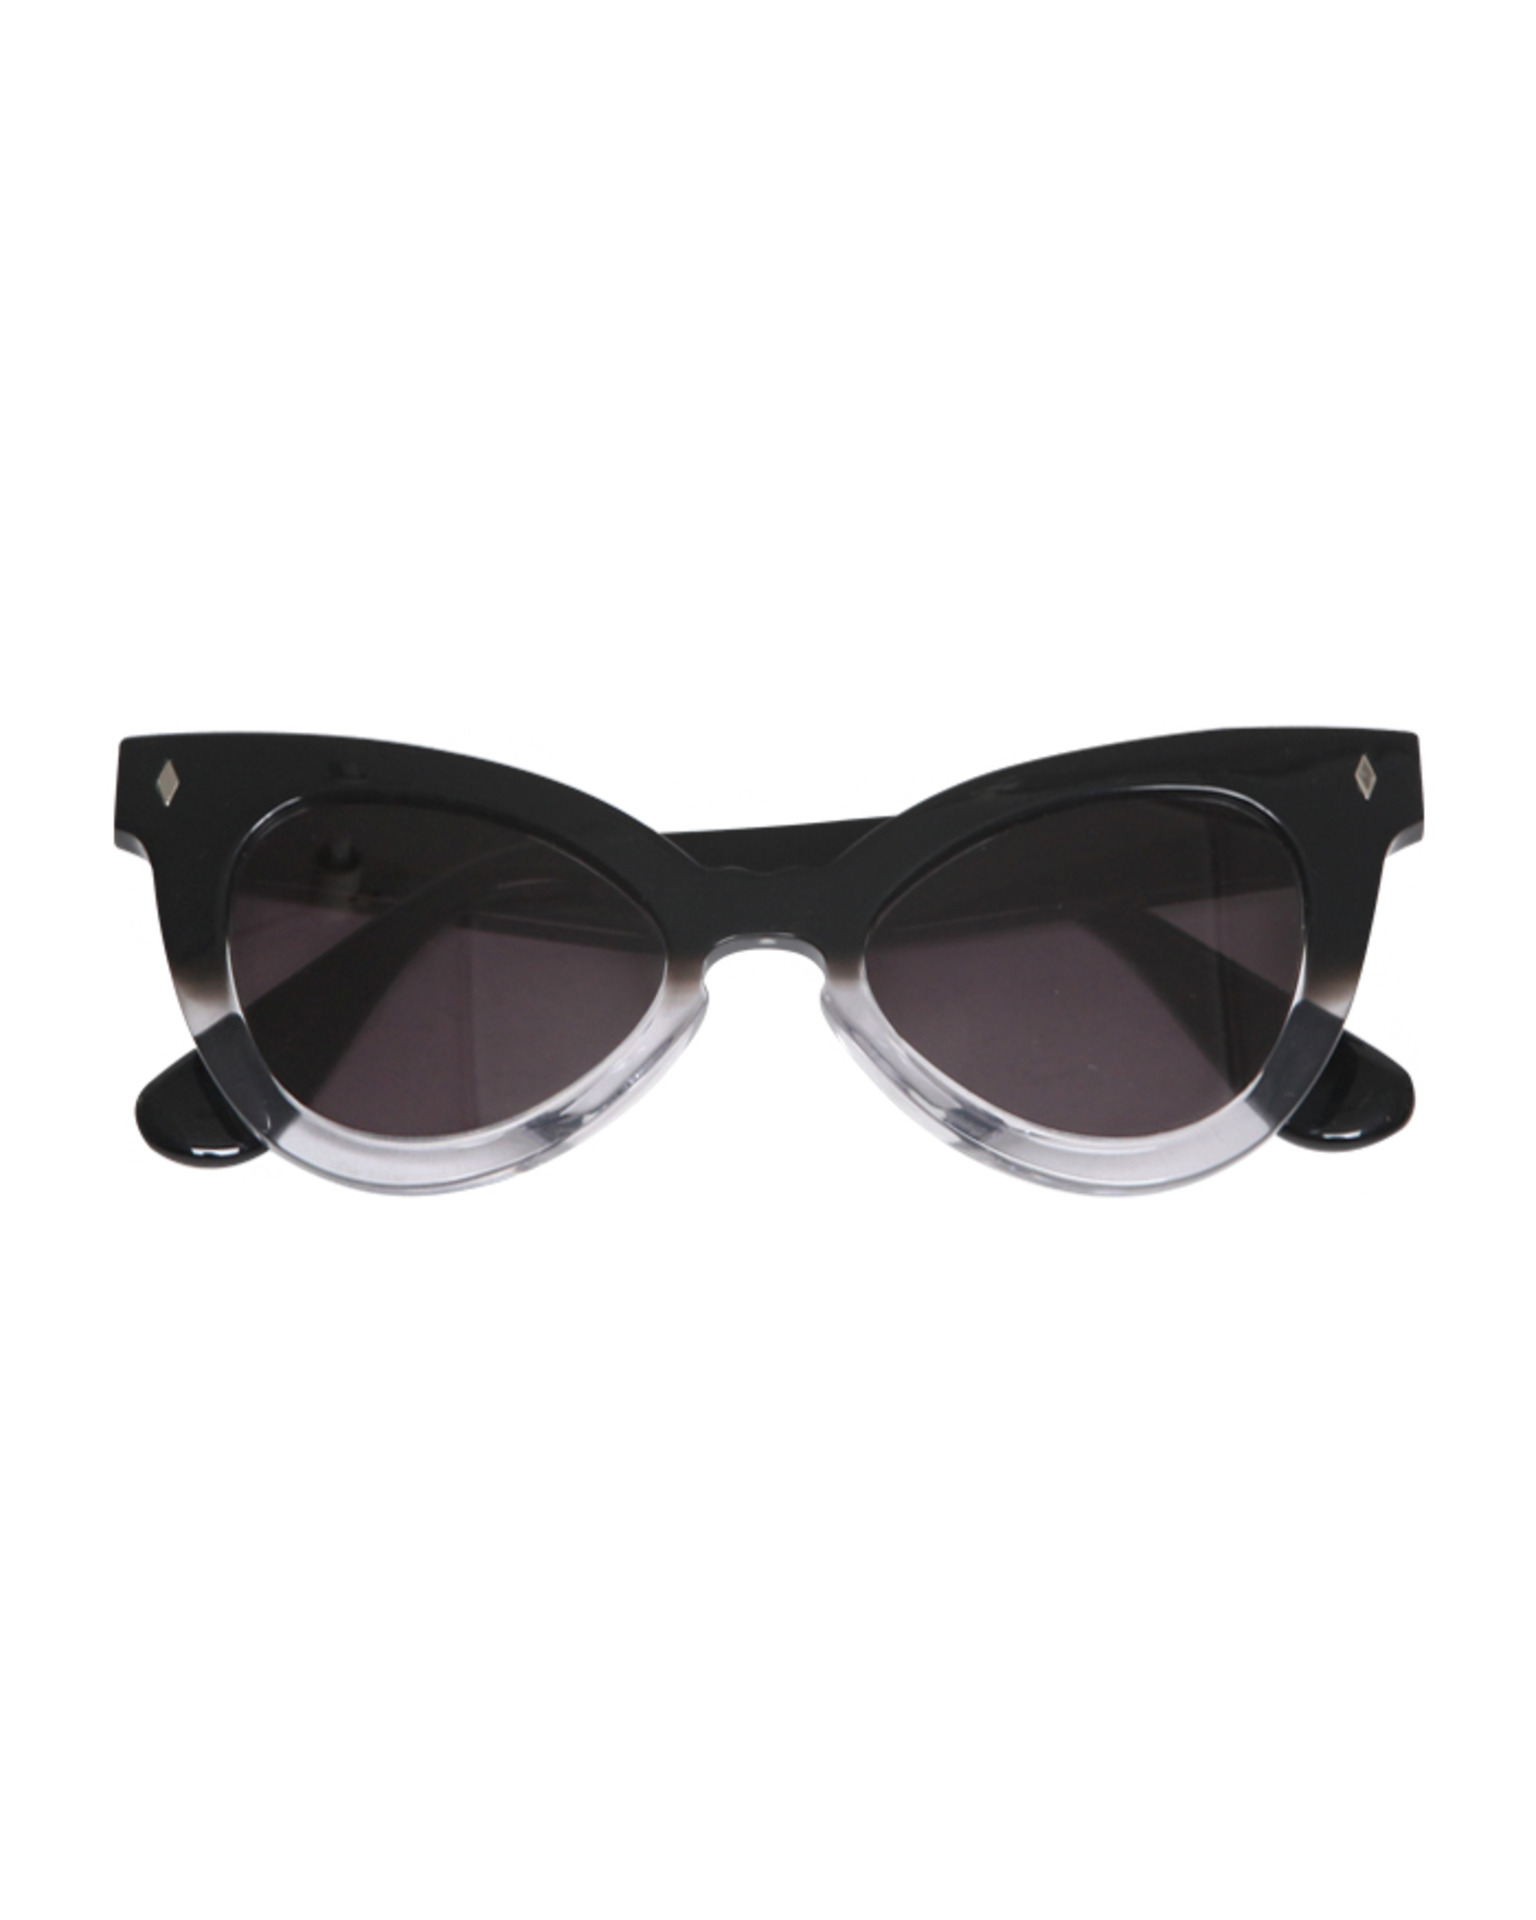 GRADATION POINT FRAME SUNGLASSES